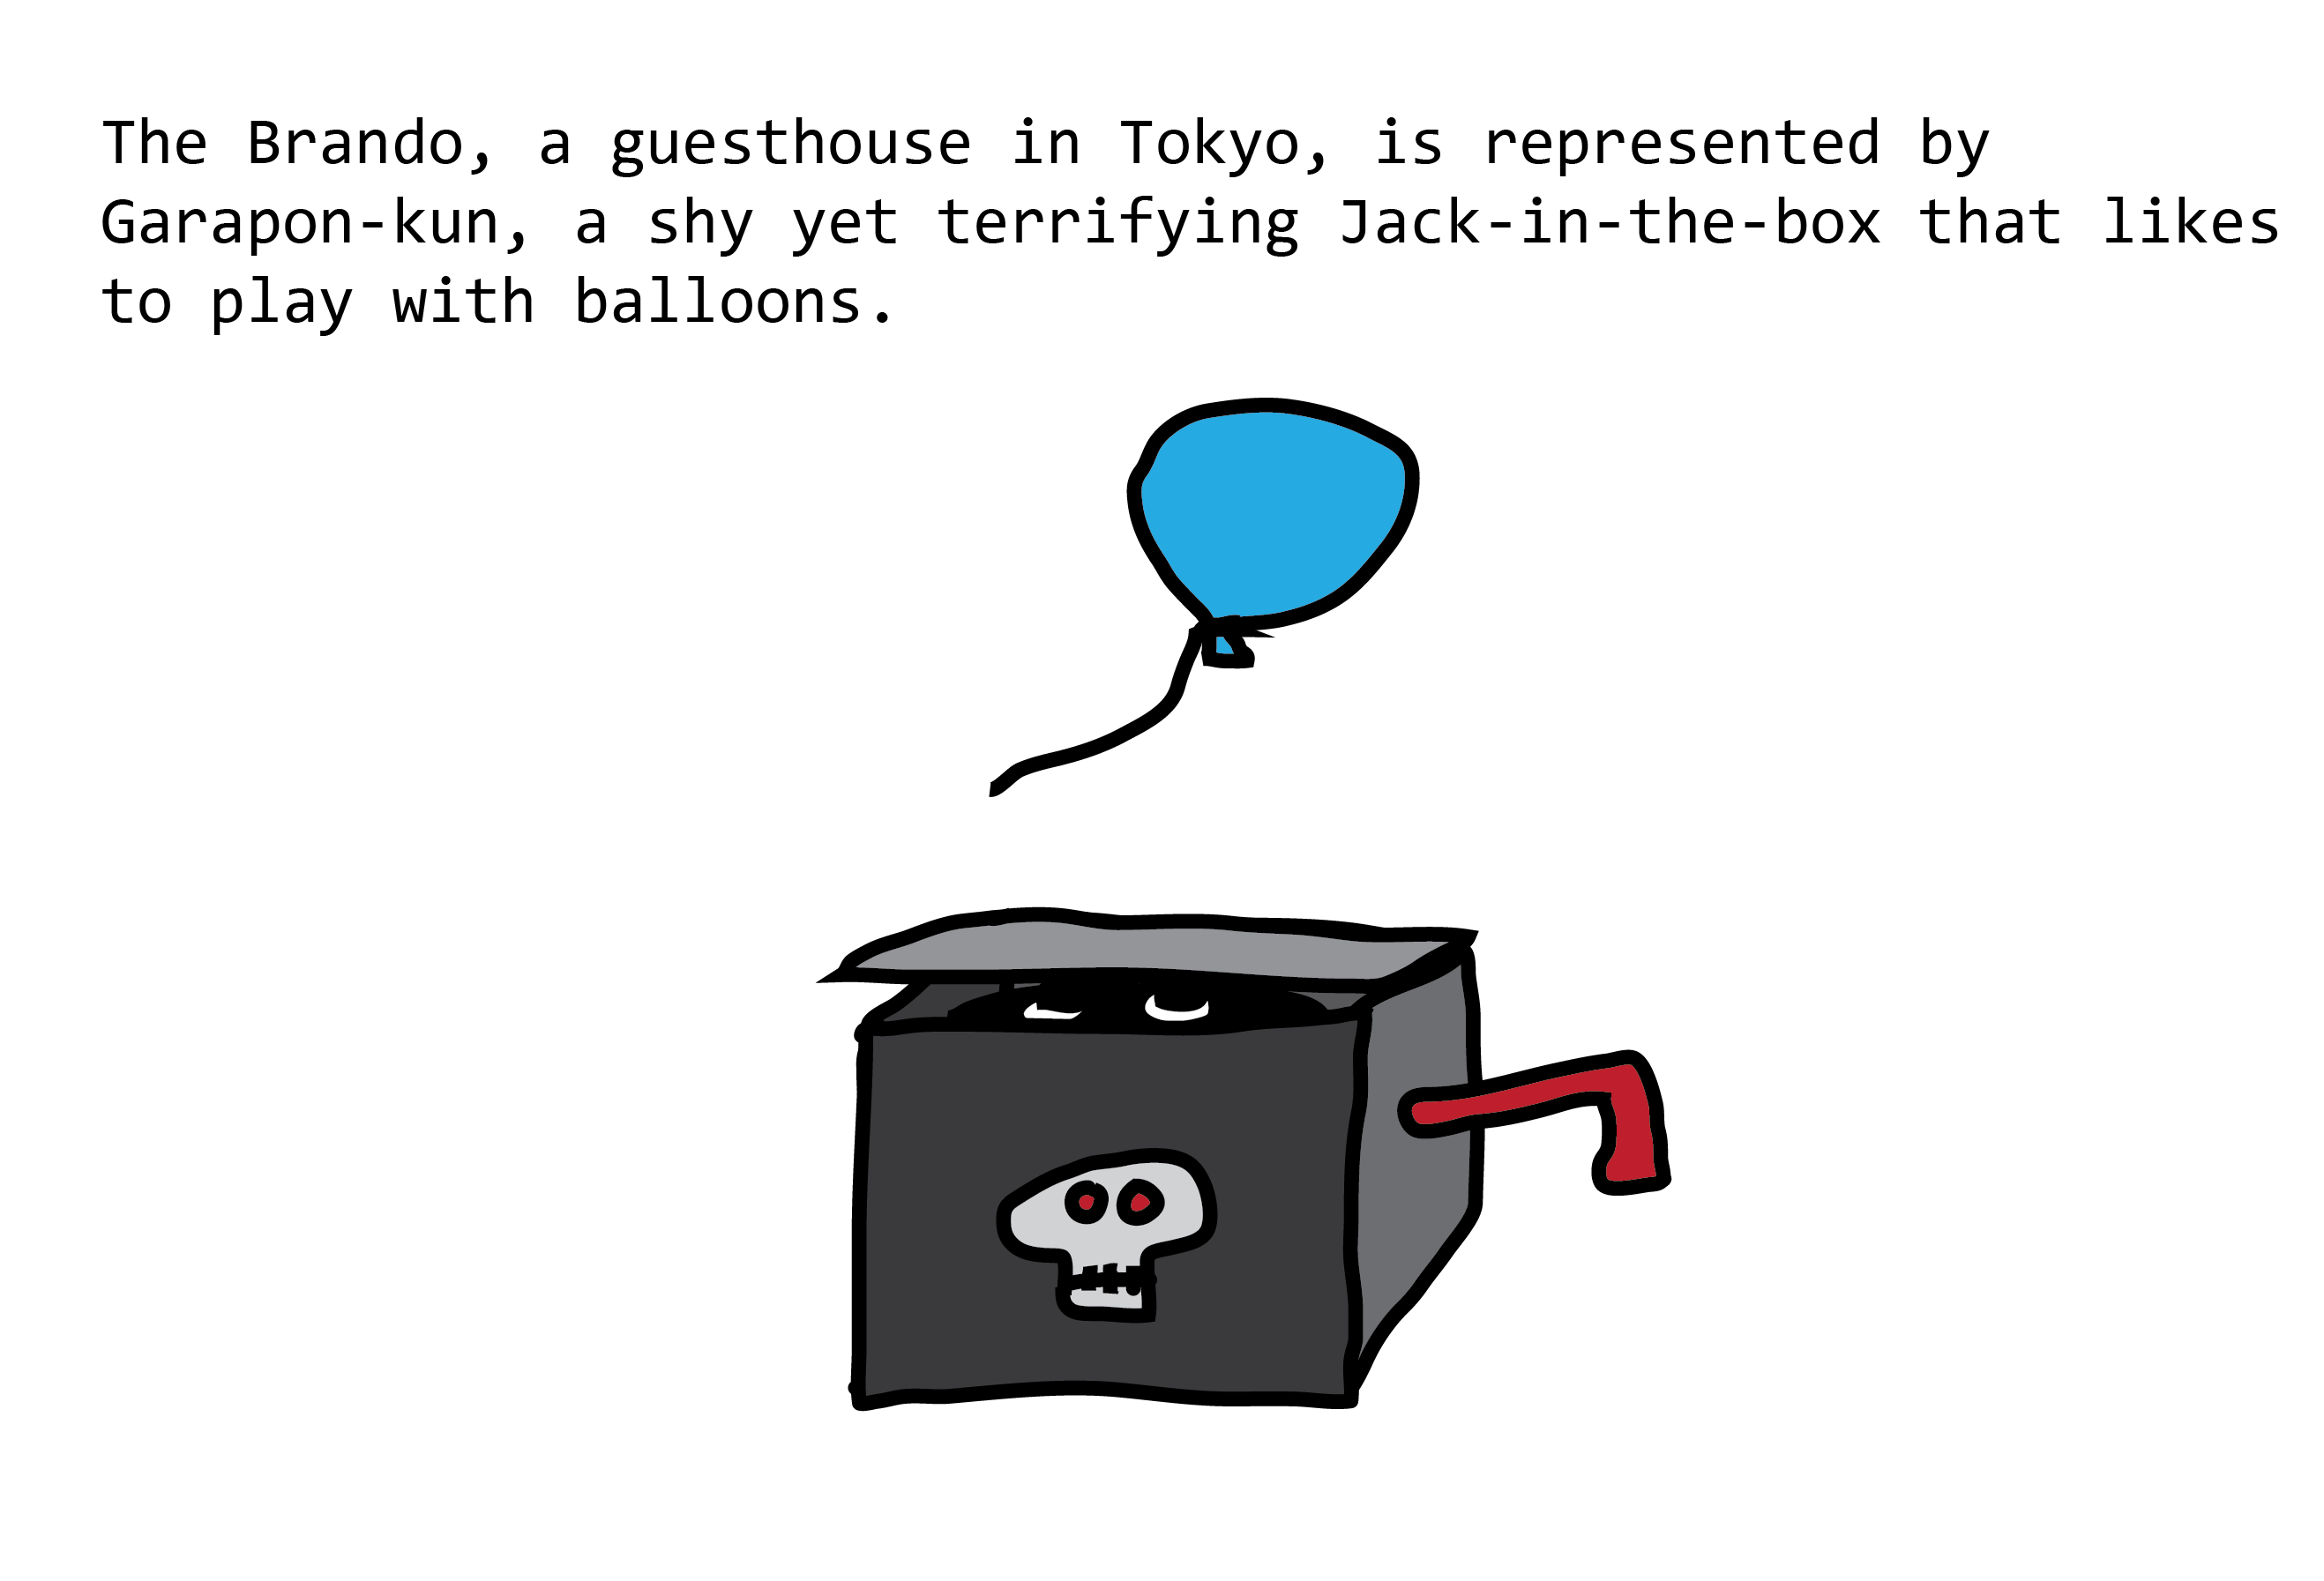 The Brando, a guesthouse in Tokyo, is represented by Garapon-kun, a shy yet terrifying Jack-in-the-box that likes to play with balloons. Jack-in-the-box has a tiny skull on the front, and a shadowy figure inside is looking up at a balloon that floats overhead